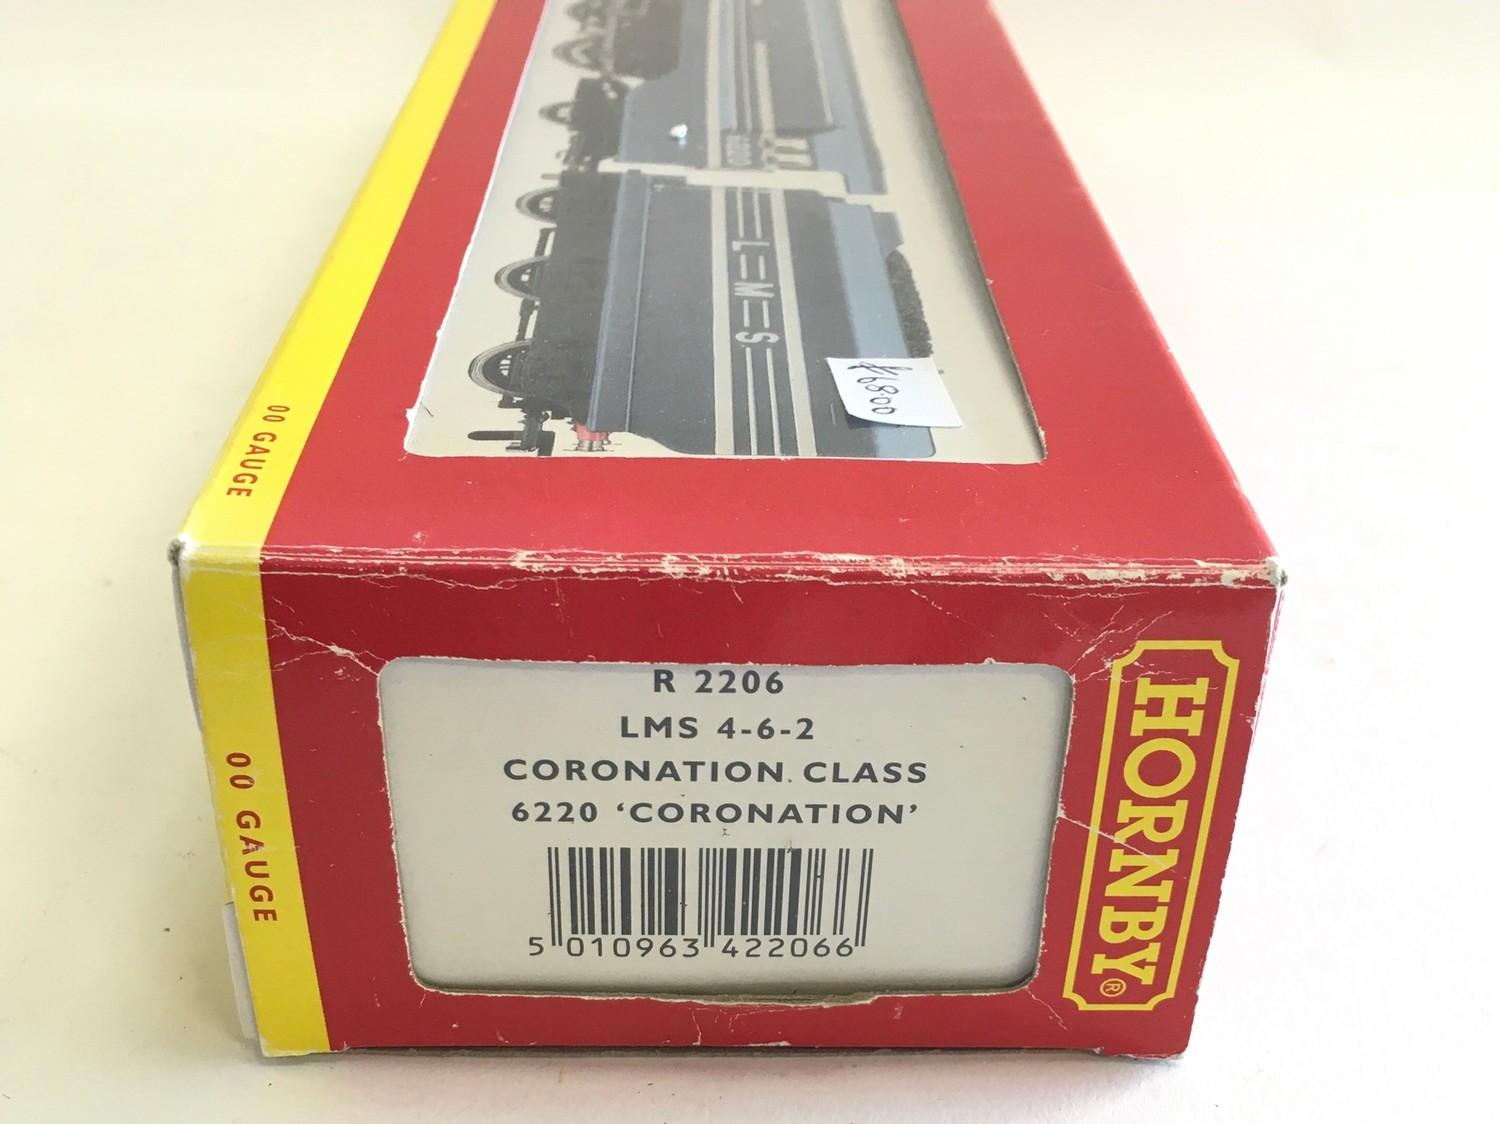 Hornby R2206 LMS 4-6-2 Coronation Class 6220 ?Coronation?. Appears Excellent in Good Plus box. - Image 2 of 3